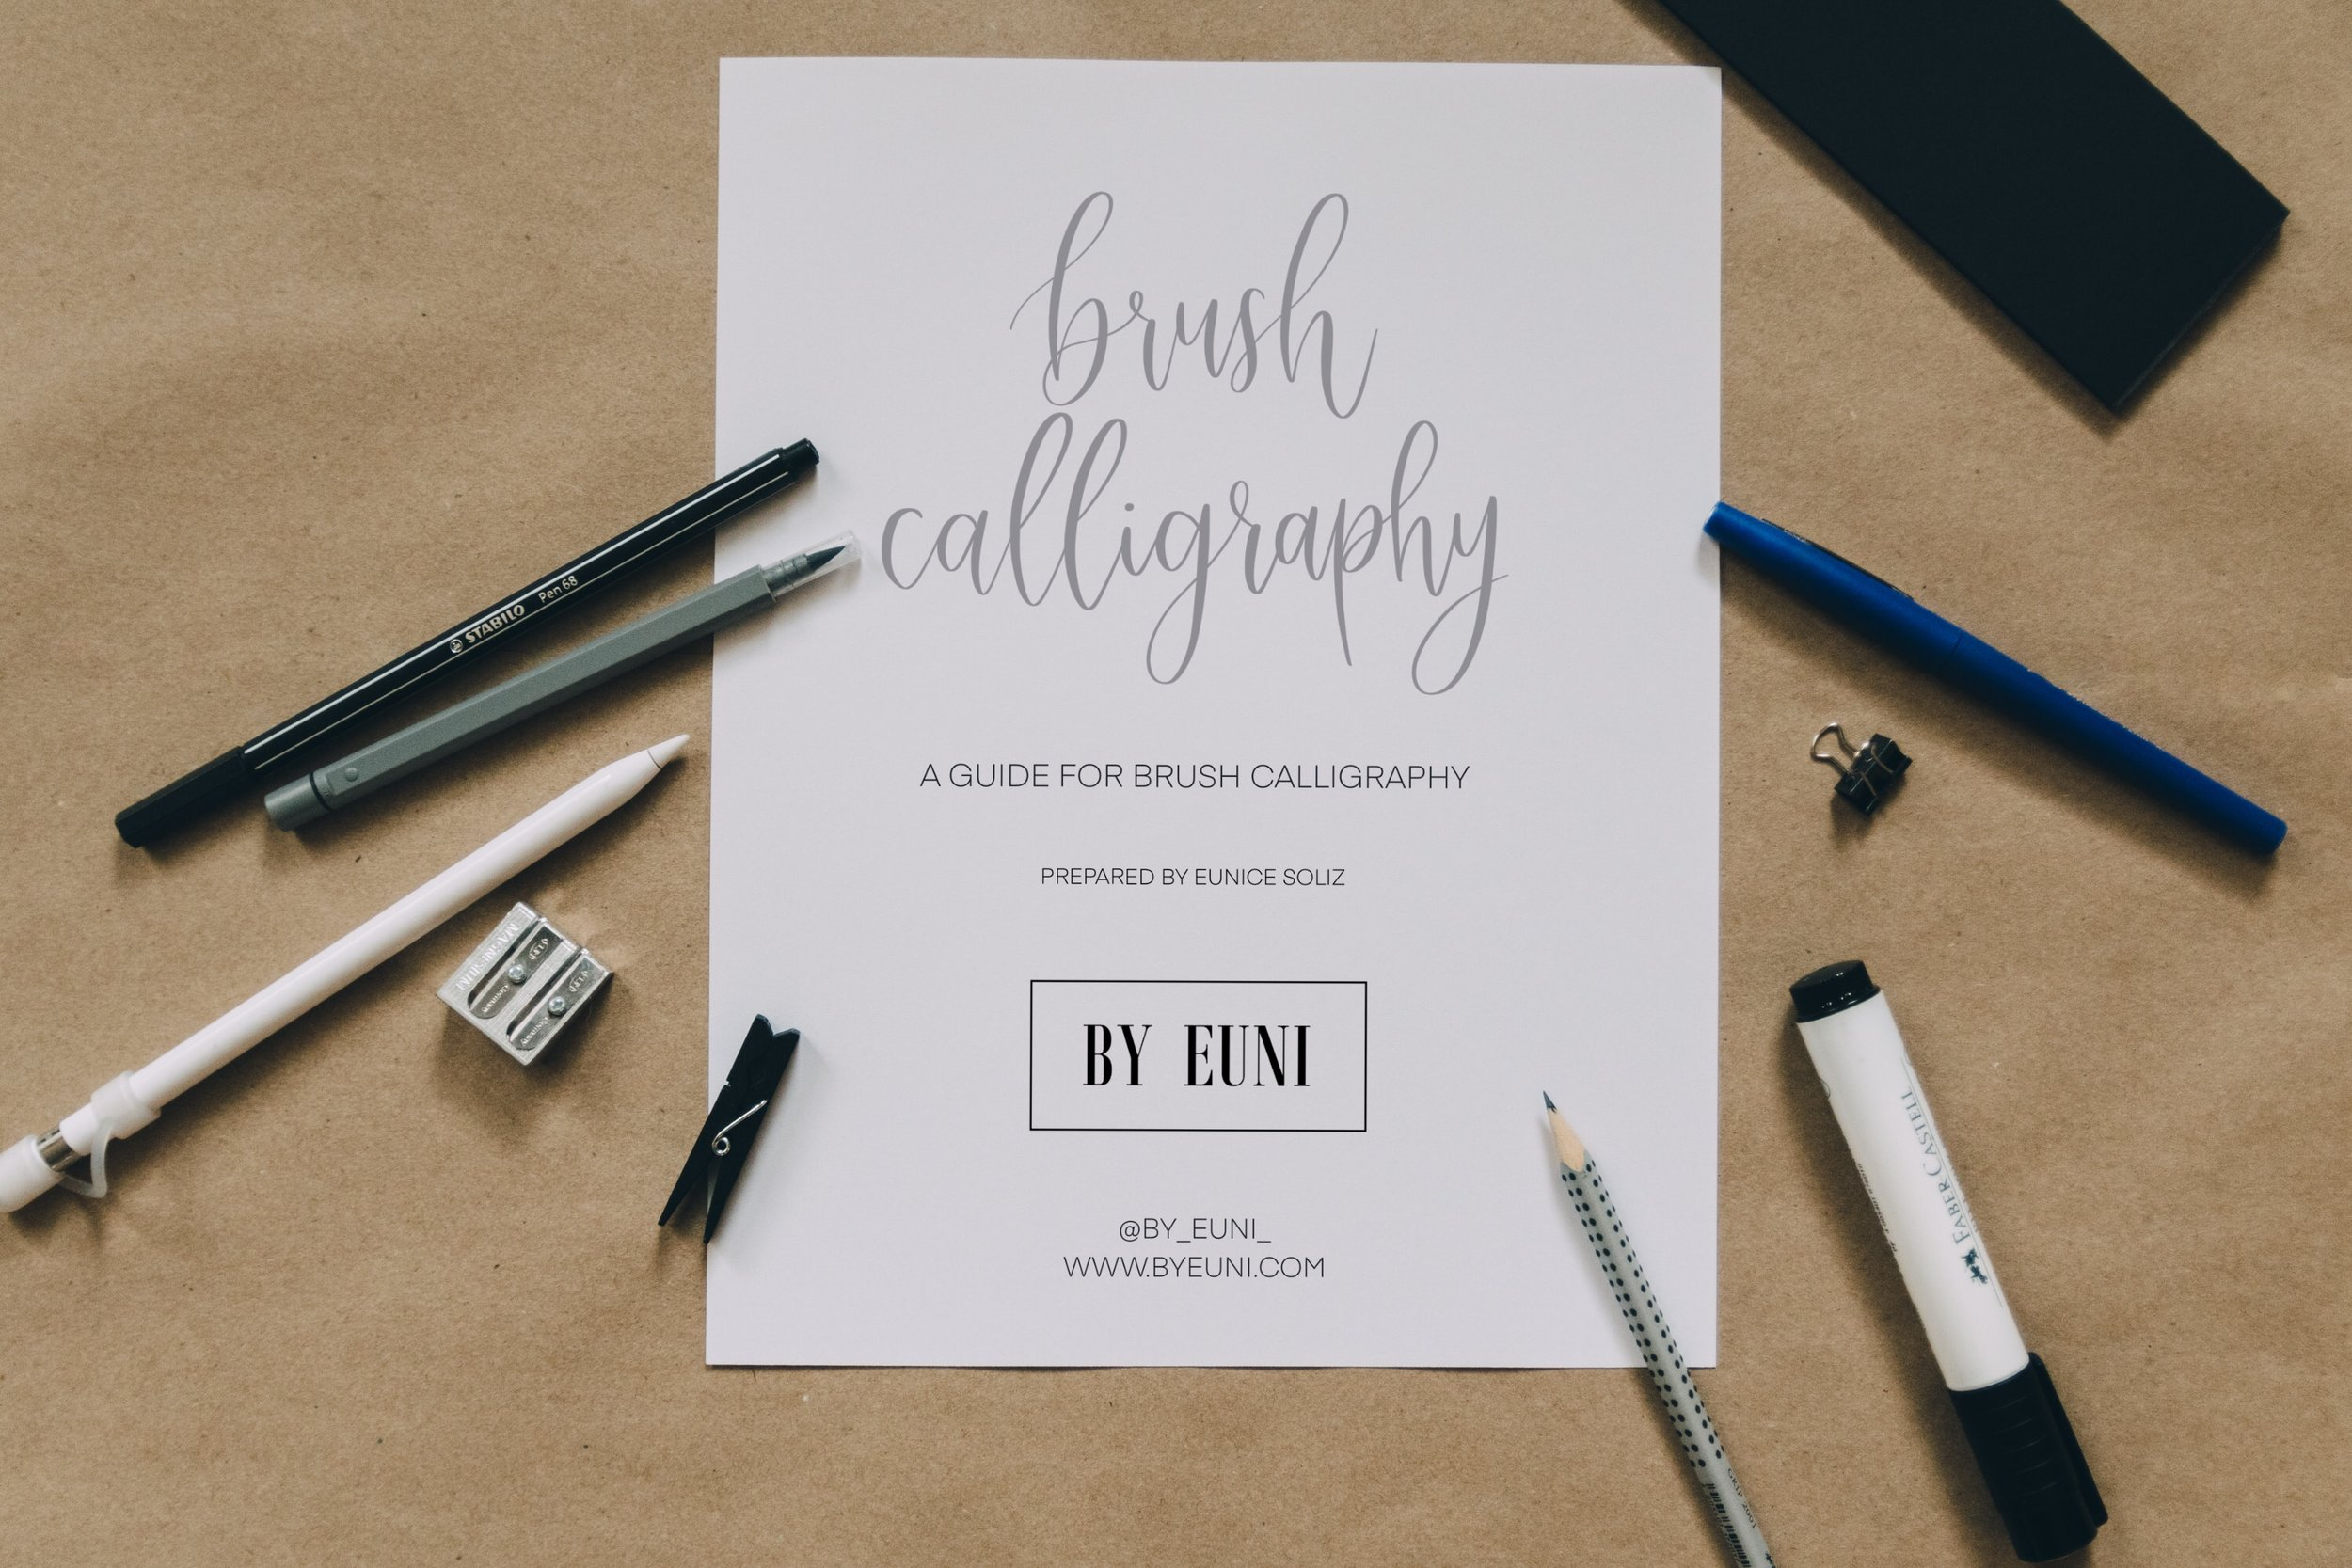 Brush Calligraphy Guide   The Brush Calligraphy guide is perfect to use with the fudenosuke brush pens! This will help you create beautiful calligraphy by mastering the pressure and strokes of your brush pen.